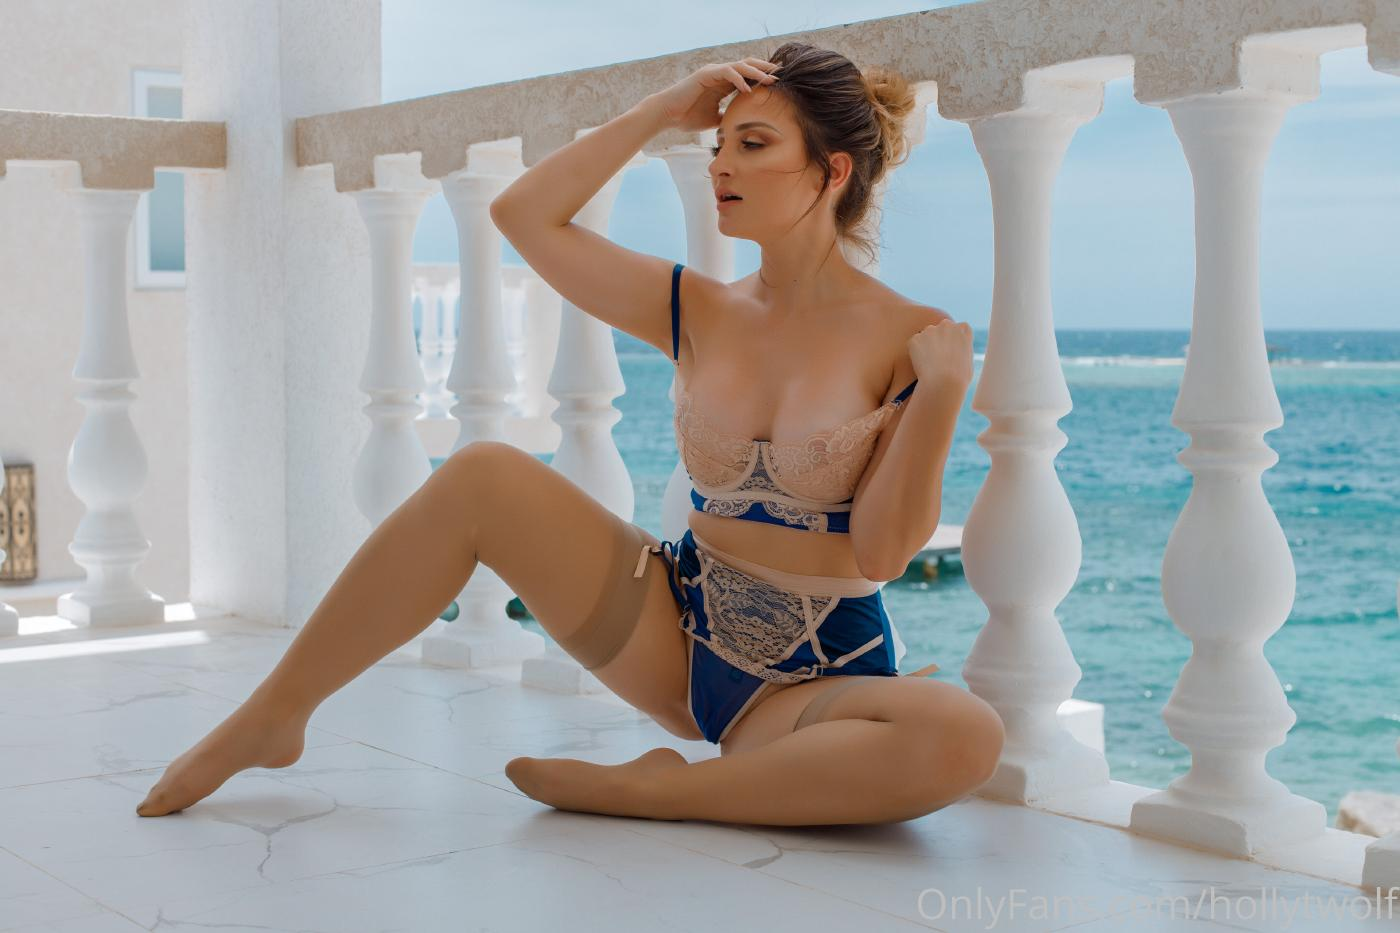 Holly Wolf Onlyfans Content Leaked 0025